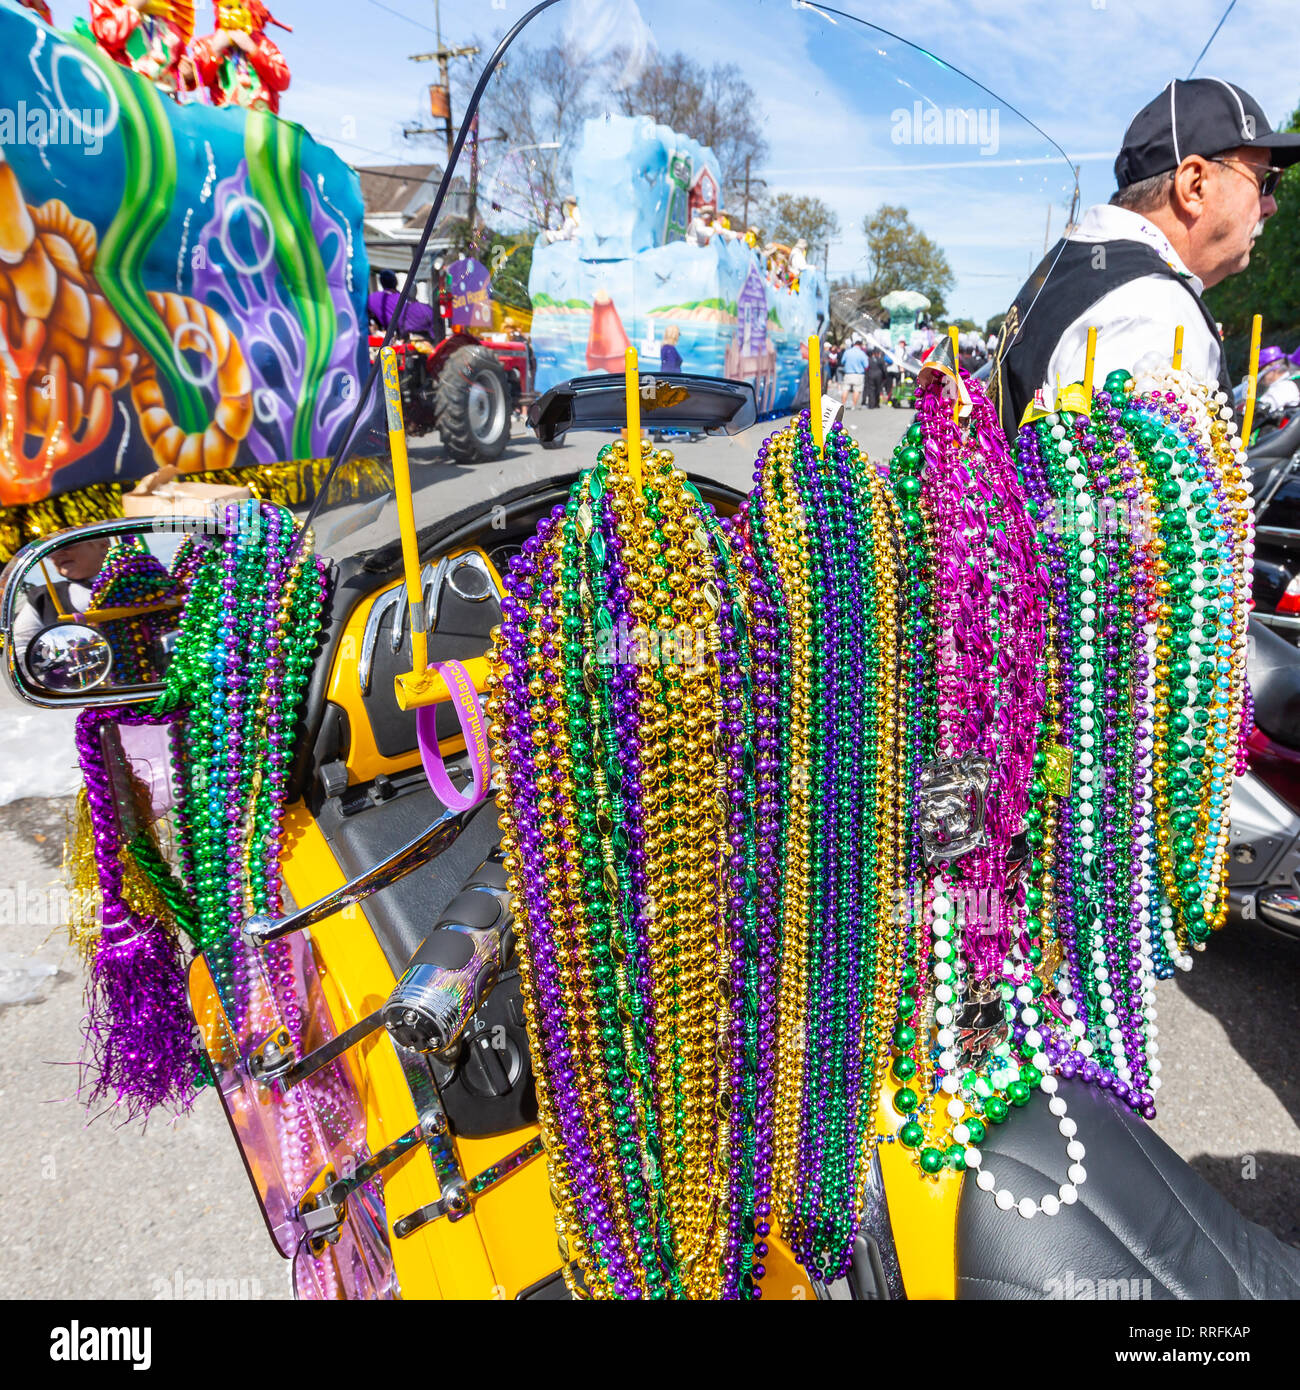 New Orleans, USA  24th Feb 2019  Mardi Gras group of